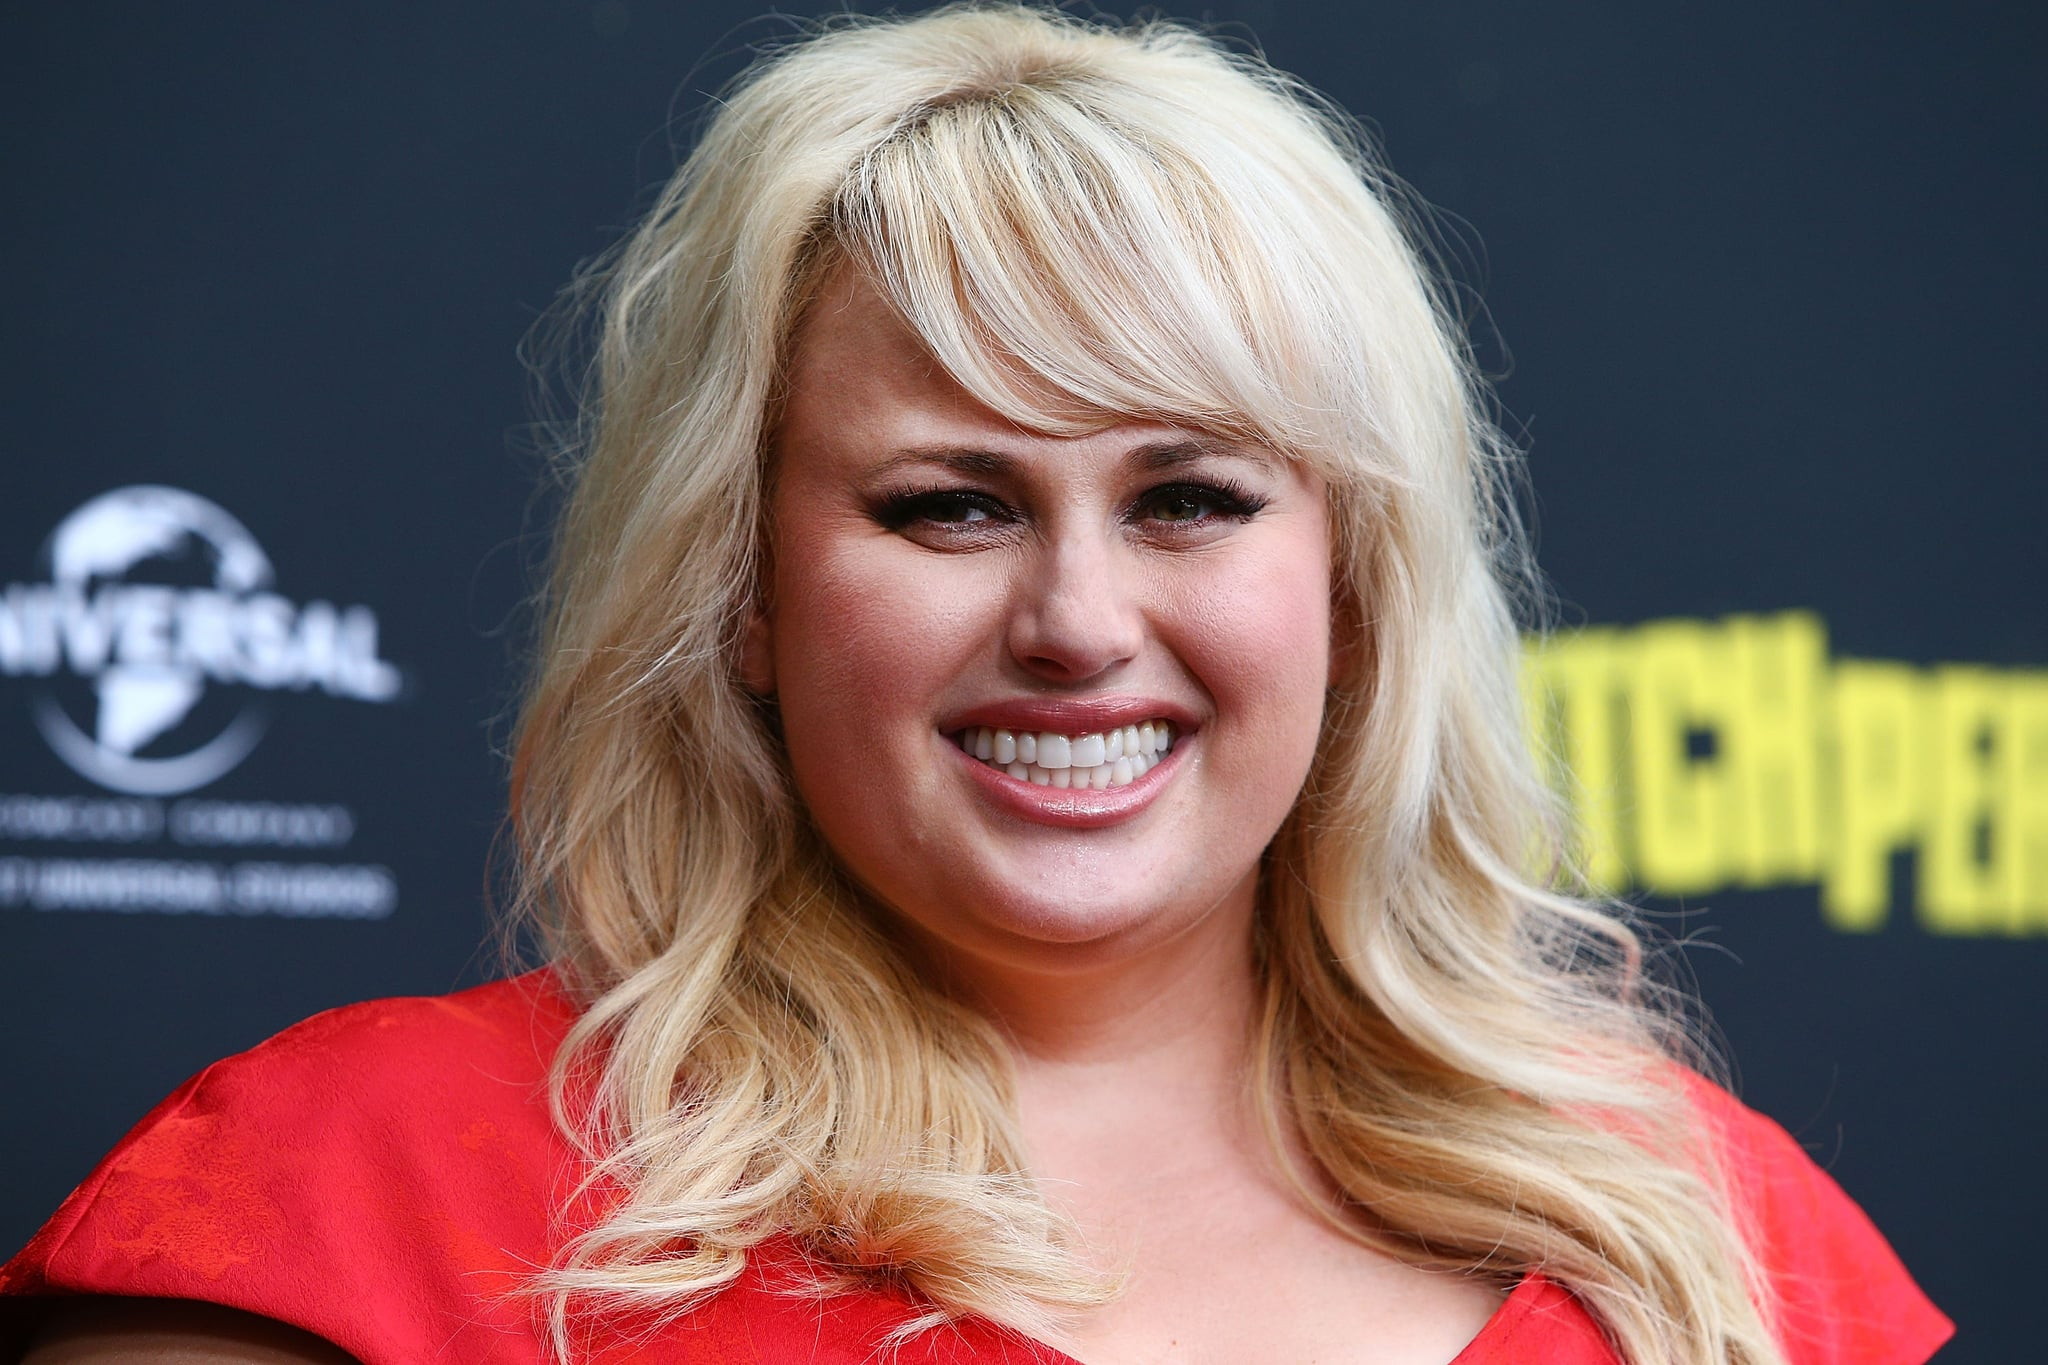 SYDNEY, AUSTRALIA - NOVEMBER 29:  Rebel Wilson arrives ahead of the Australian Premiere of Pitch Perfect 3 on November 29, 2017 in Sydney, Australia.  (Photo by Lisa Maree Williams/Getty Images)